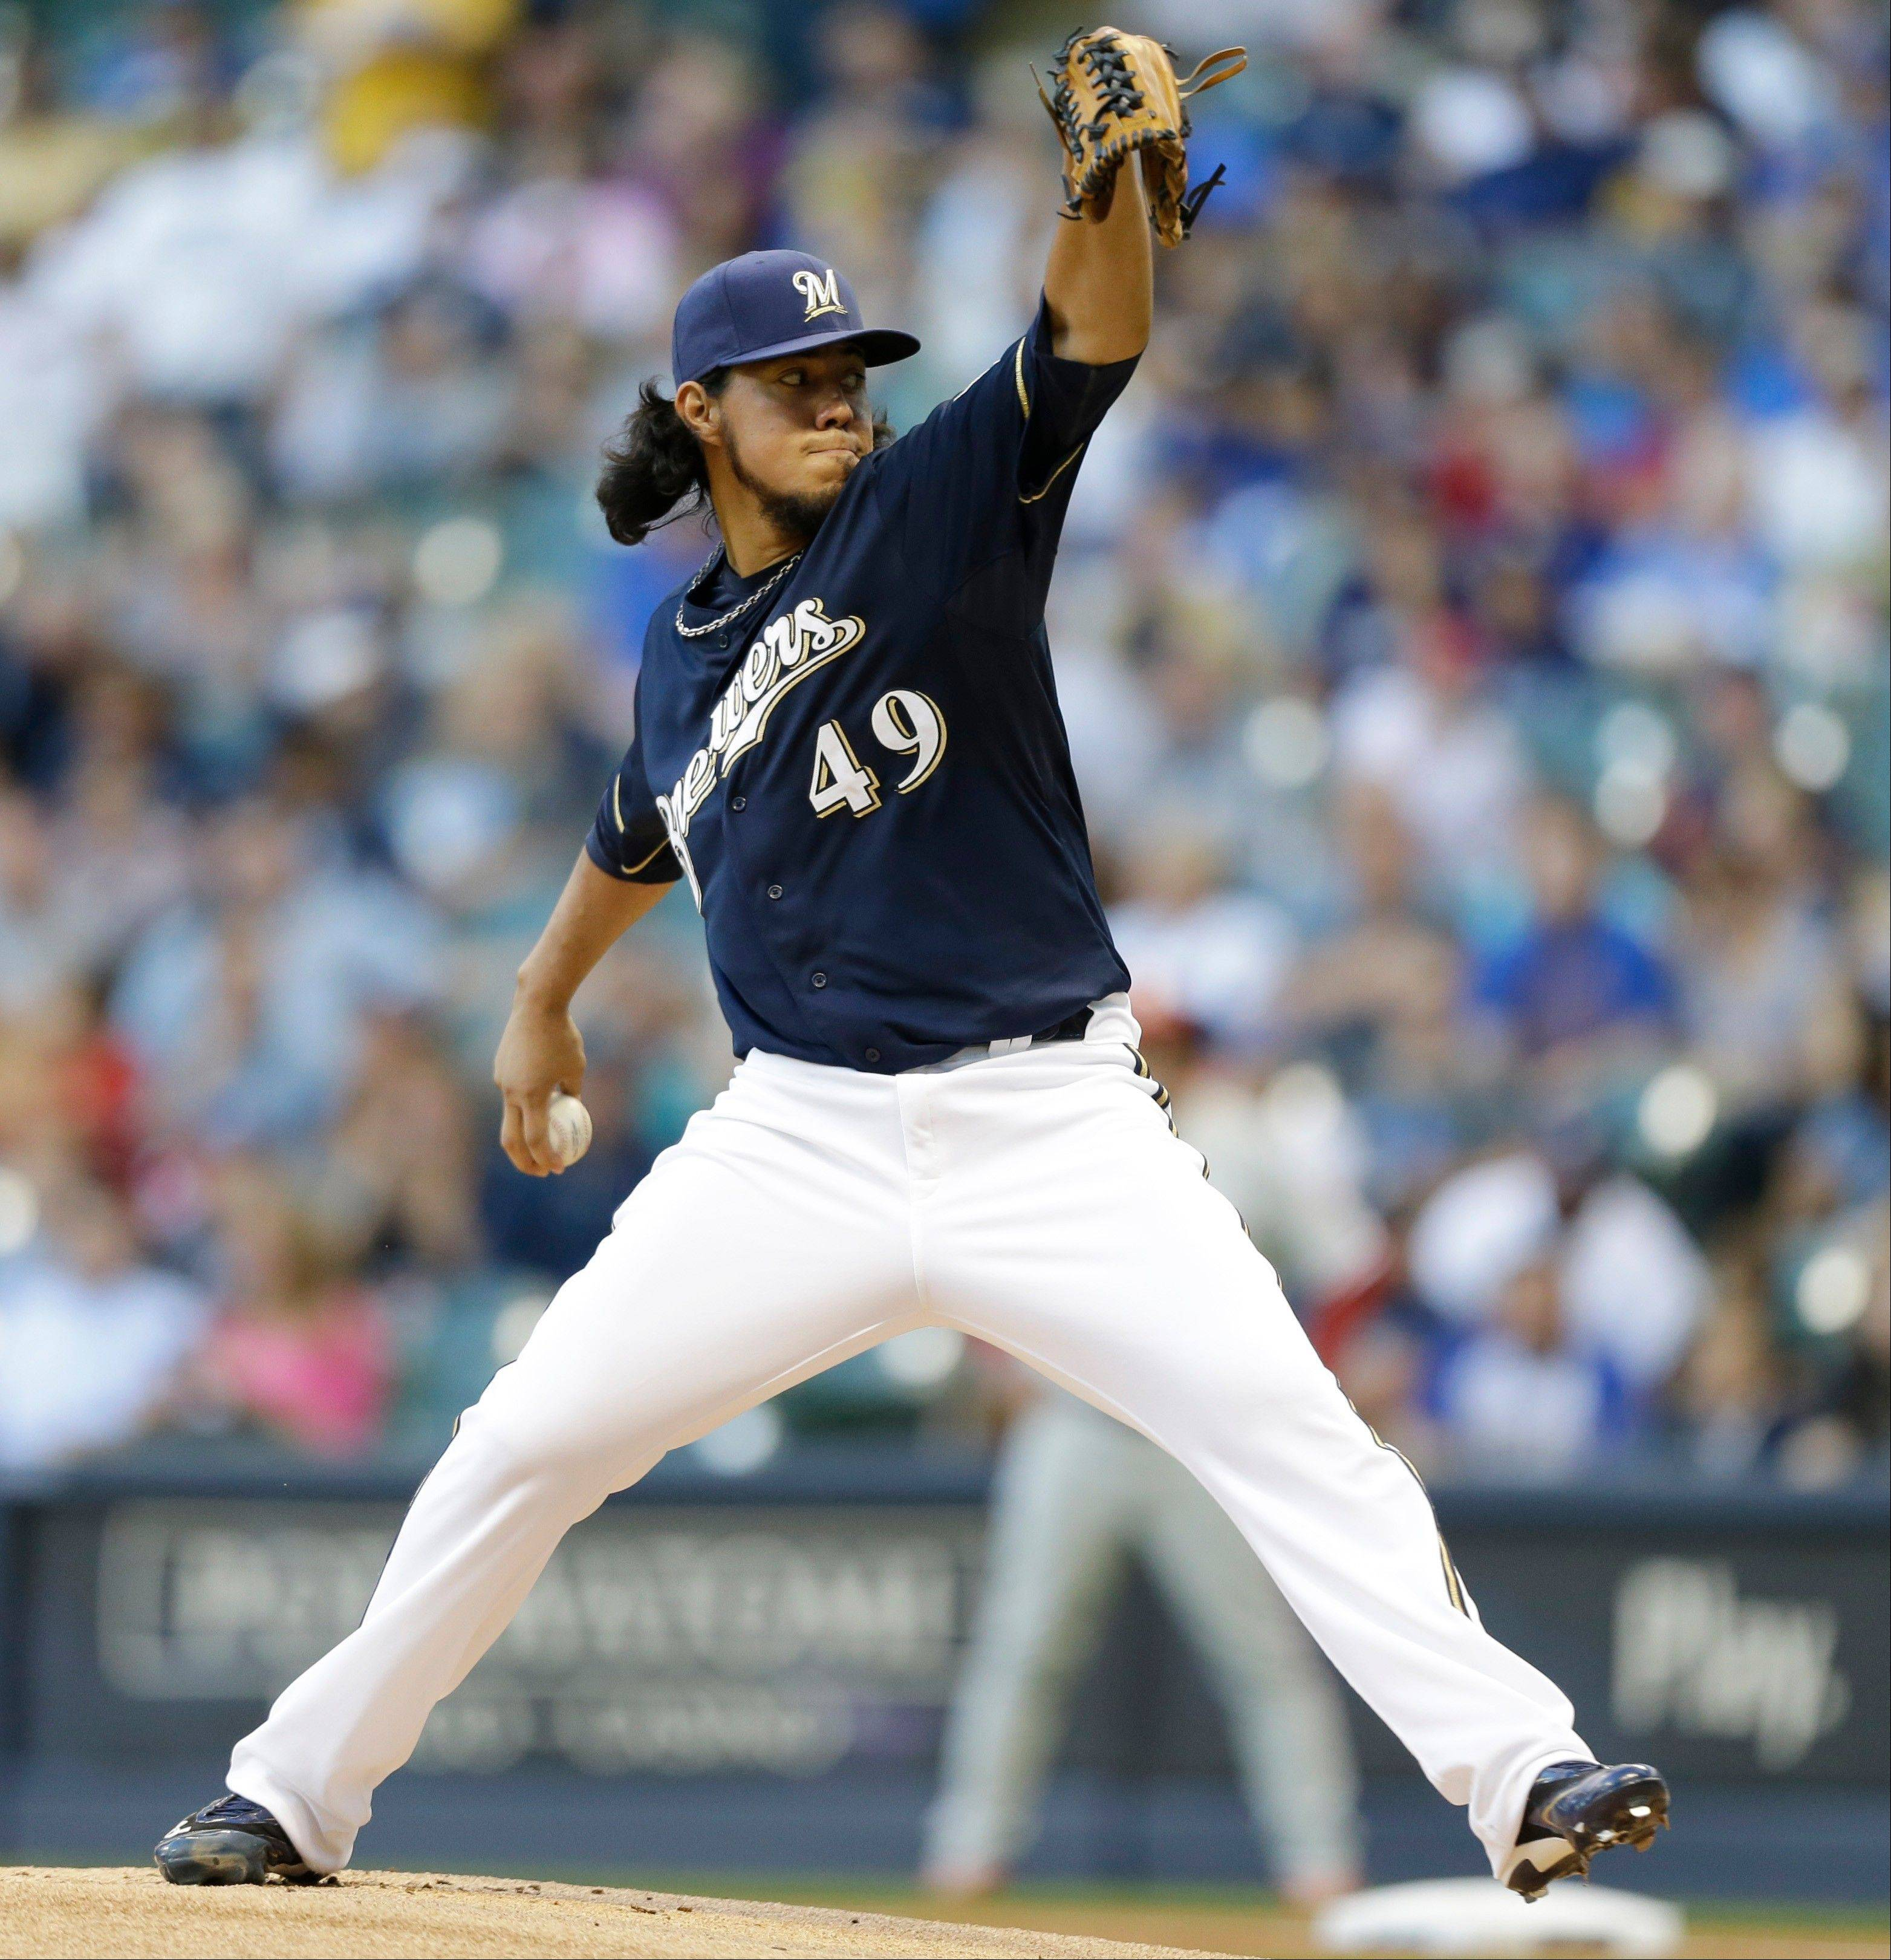 Milwaukee starting pitcher Yovani Gallardo struck out nine Friday at home against Philadelphia.